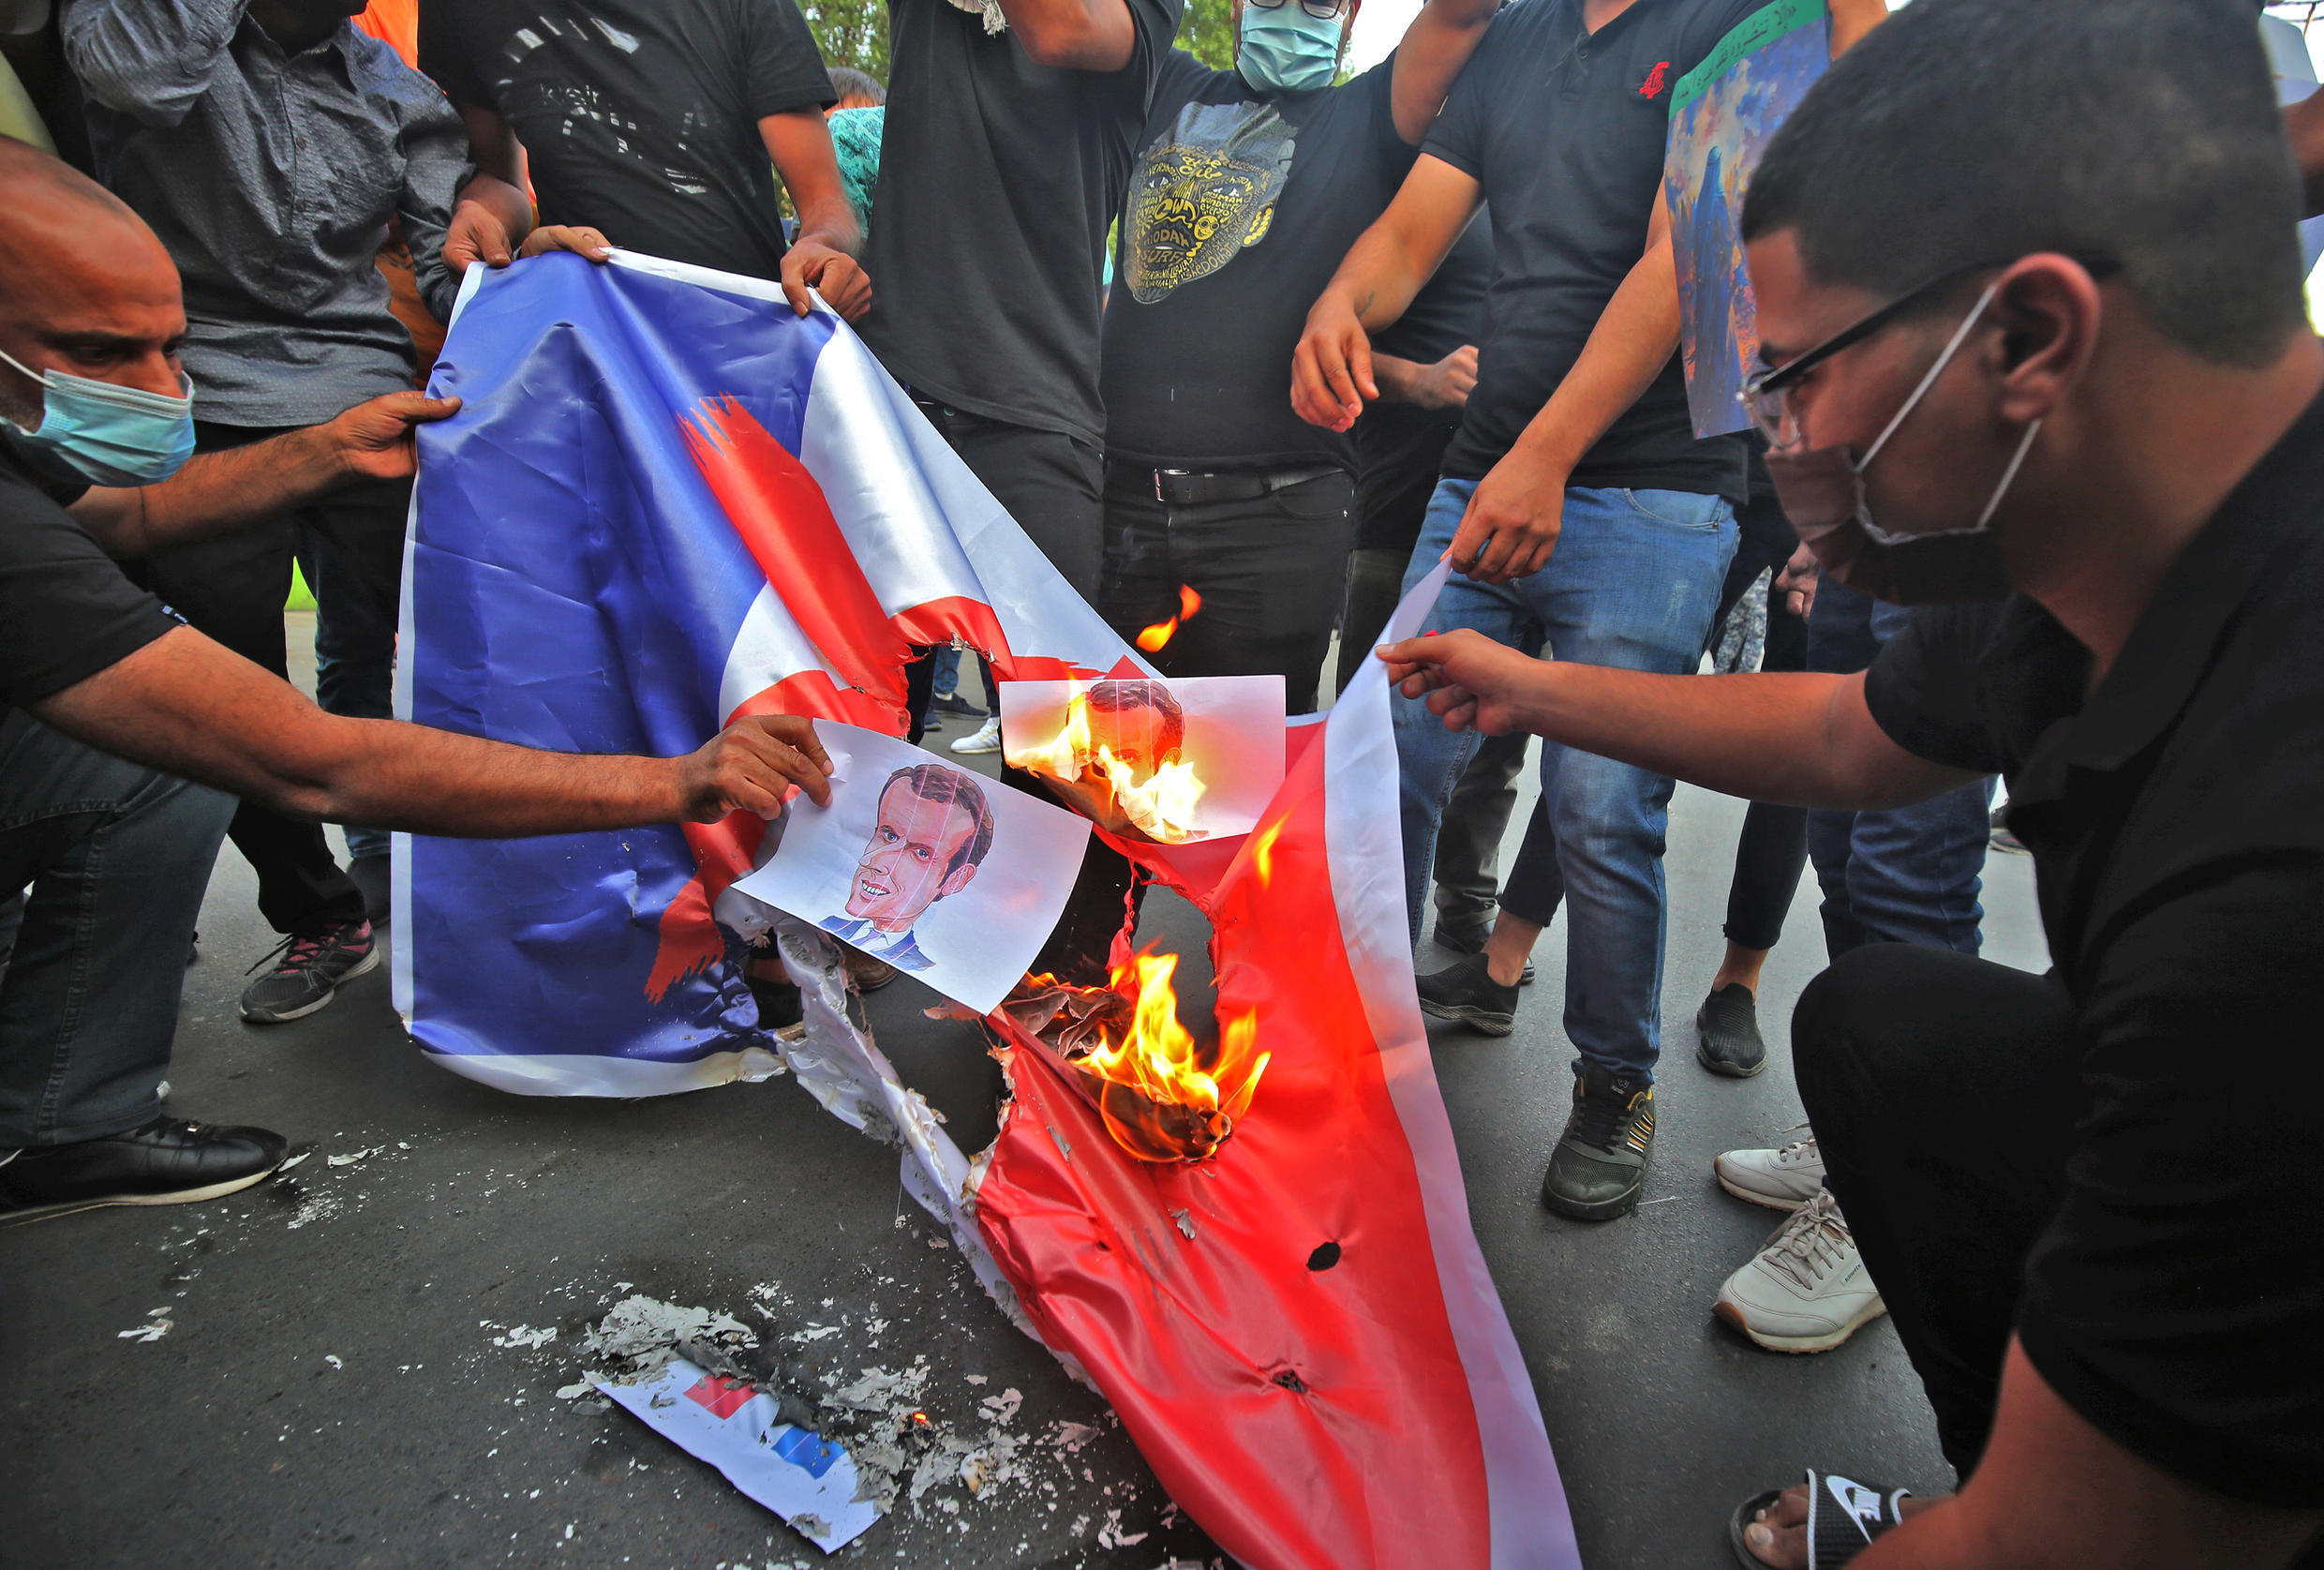 Iraqi protesters burn posters and the French flag during a demonstration against French President Emmanuel Macron in front of the French embassy in Baghdad on October 26, 2020